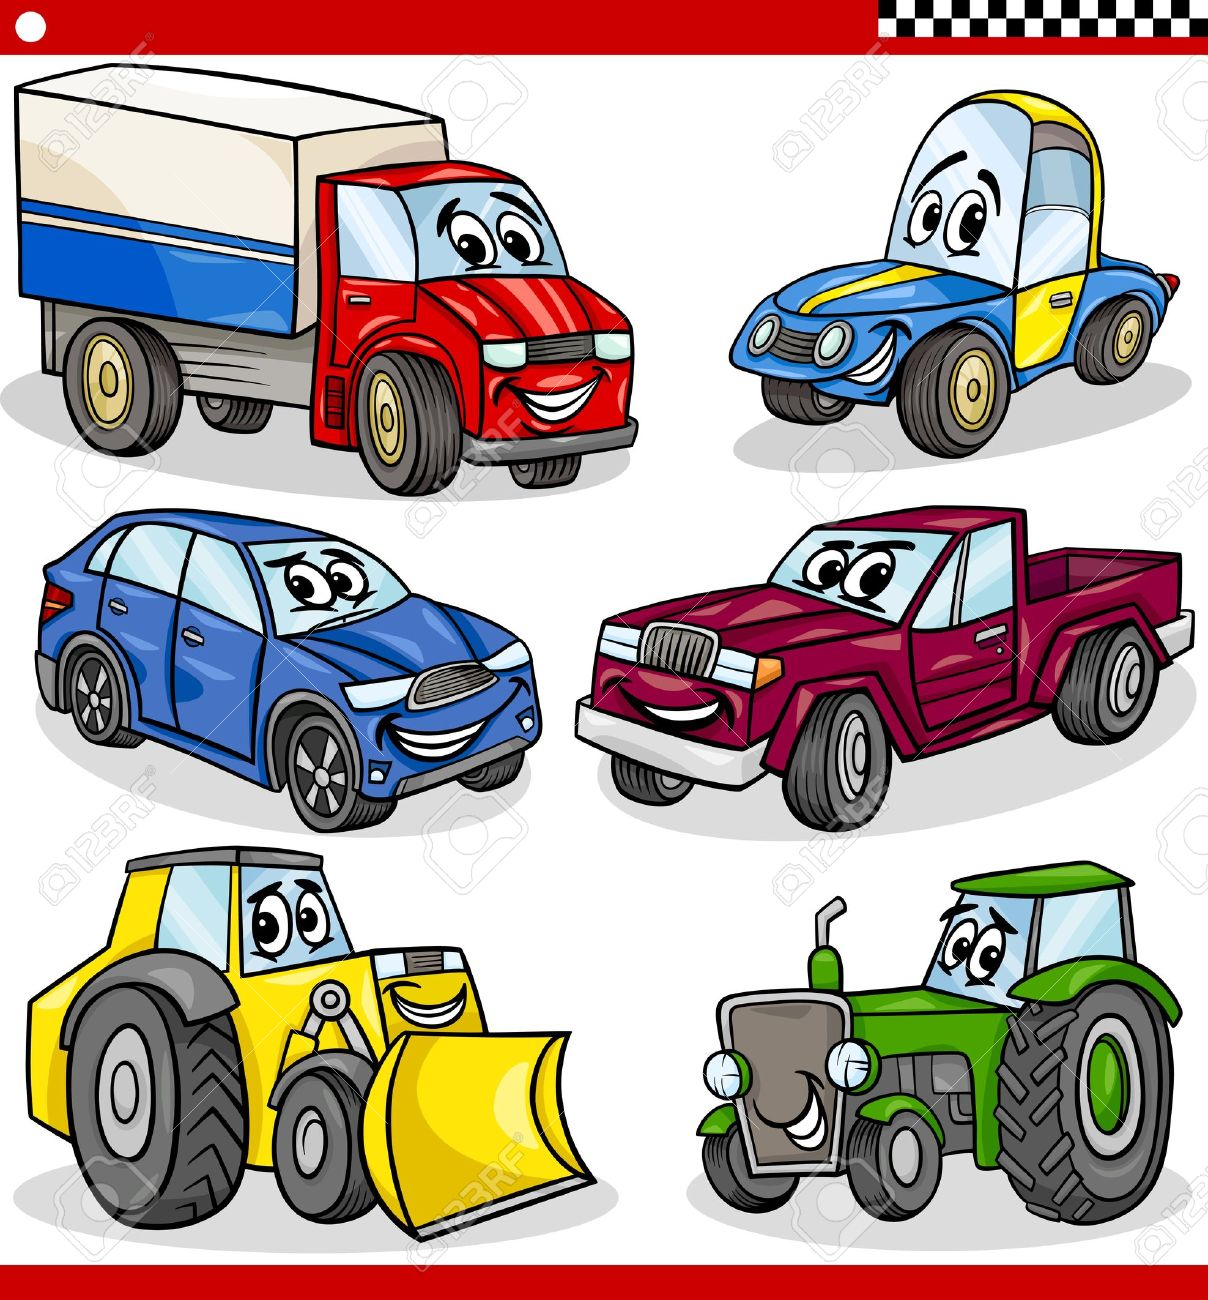 cartoon illustration of cars and trucks vehicles and machines comic characters set for children stock vector